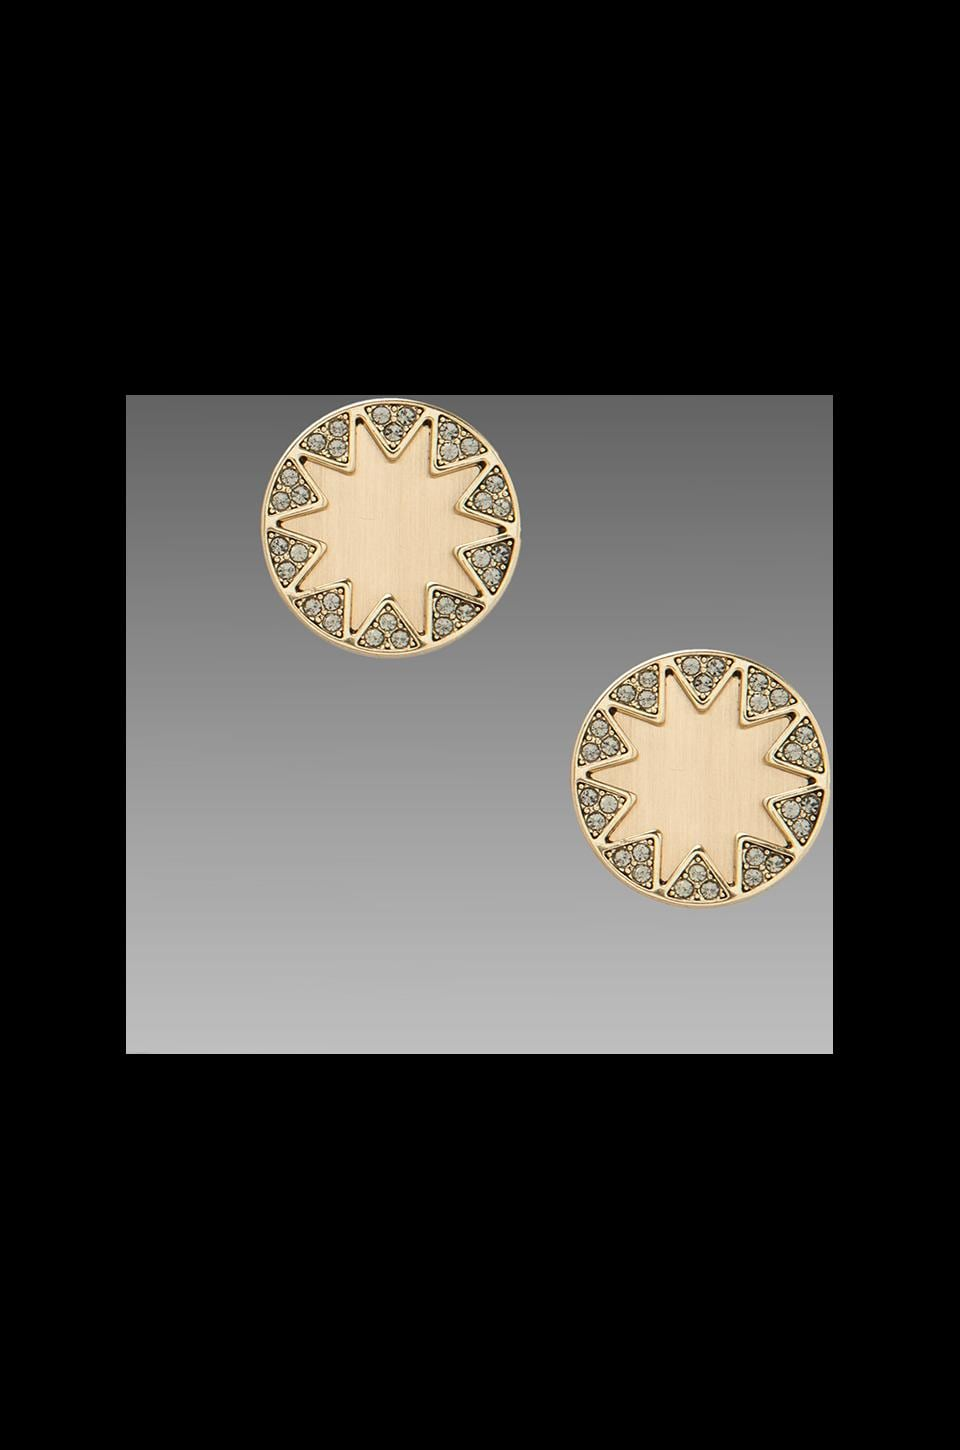 House of Harlow 1960 House of Harlow Earth Metal Sunburst Earrings in Gold/Black Pave